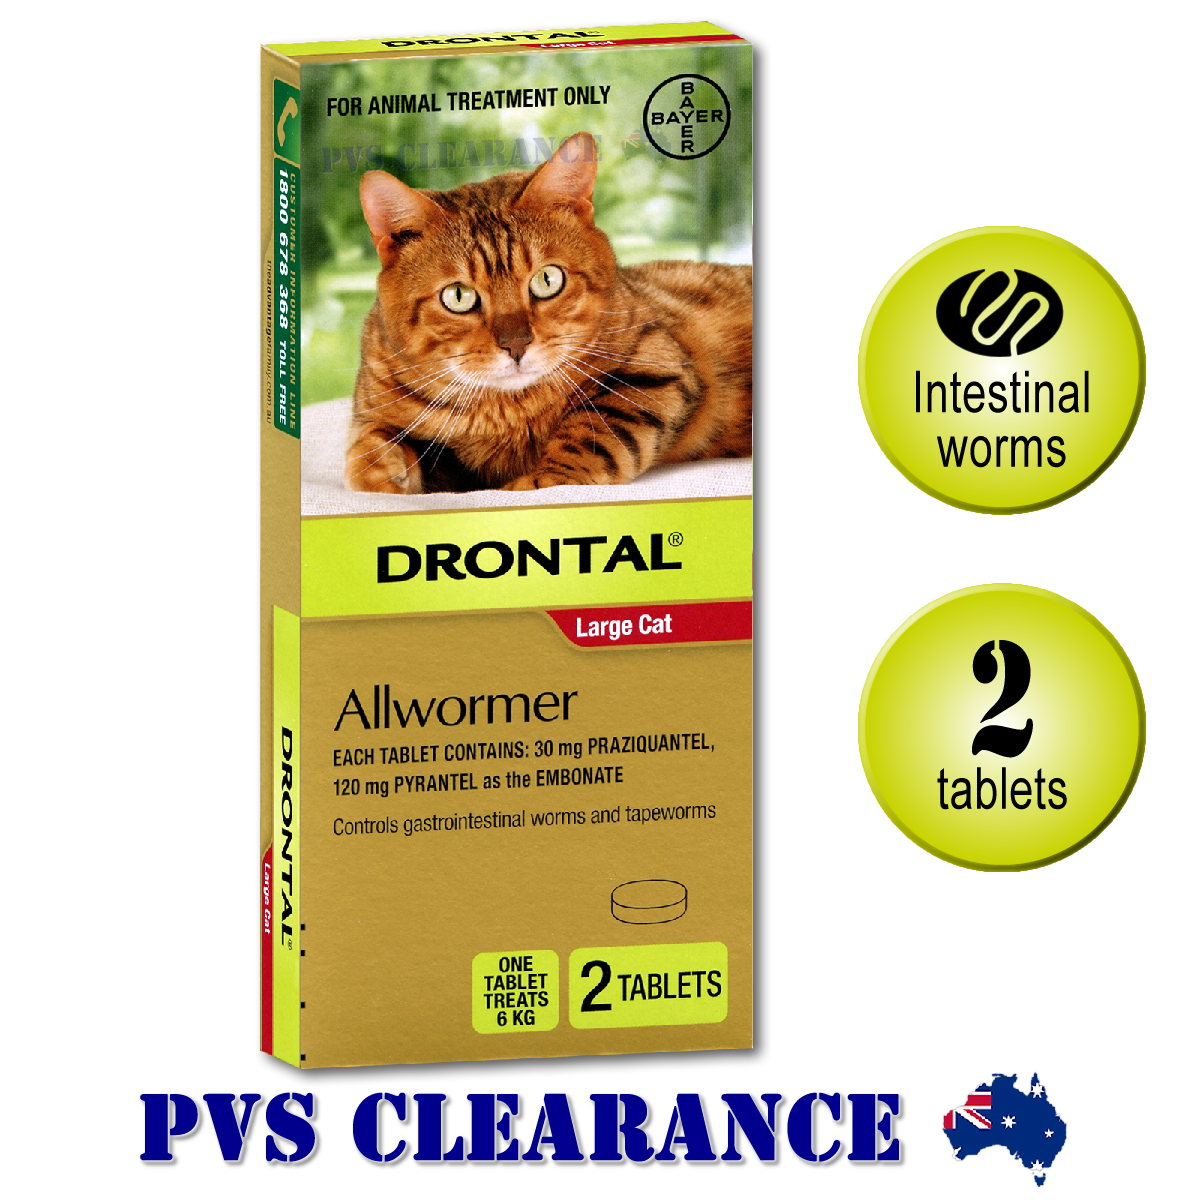 Details about Drontal Allwormer Red for Large Cats Up To 6 kg - Cat Wormer  - 2-Pack